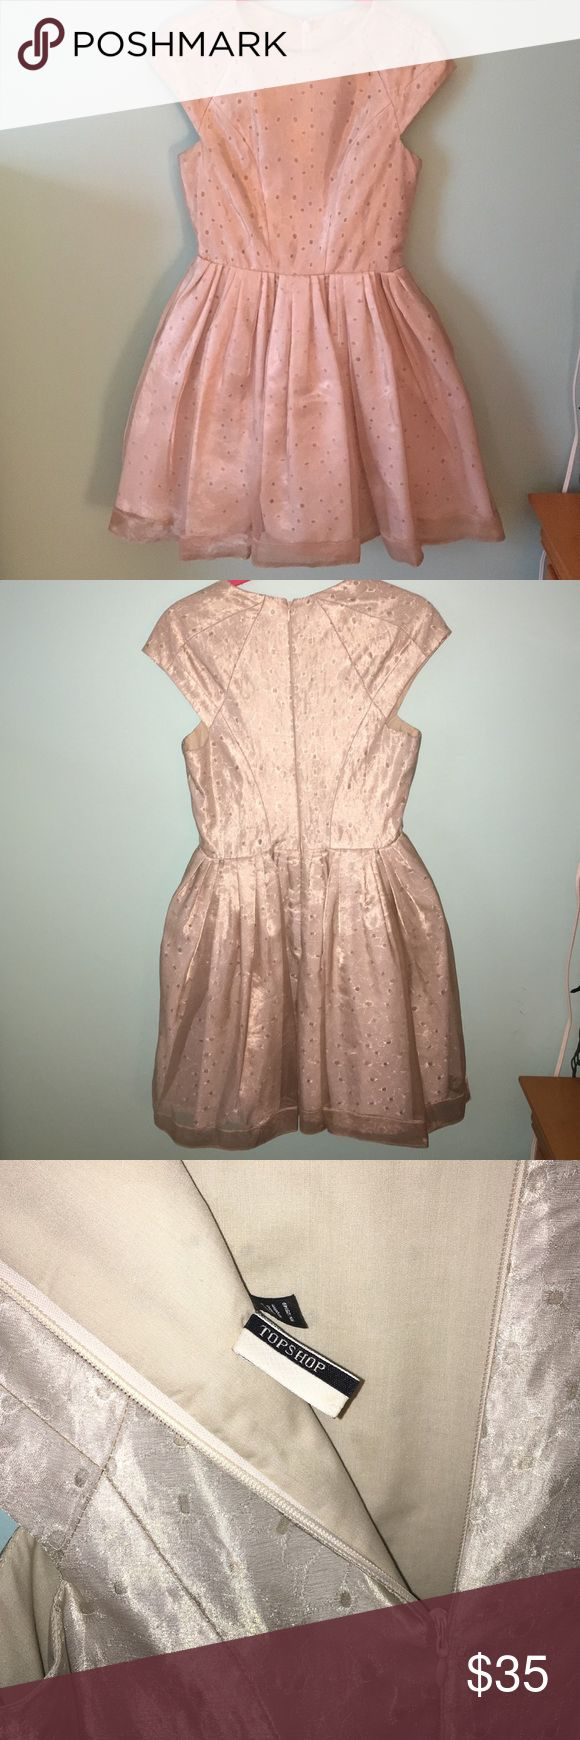 Topshop dress, cap sleeves, chiffon layering Beautiful dress with floral cut out under layering and gold over layering. Cap sleeves and in a beautiful light gold color. Never worn before! Perfect to wear to a wedding as a guest. Topshop Dresses Wedding